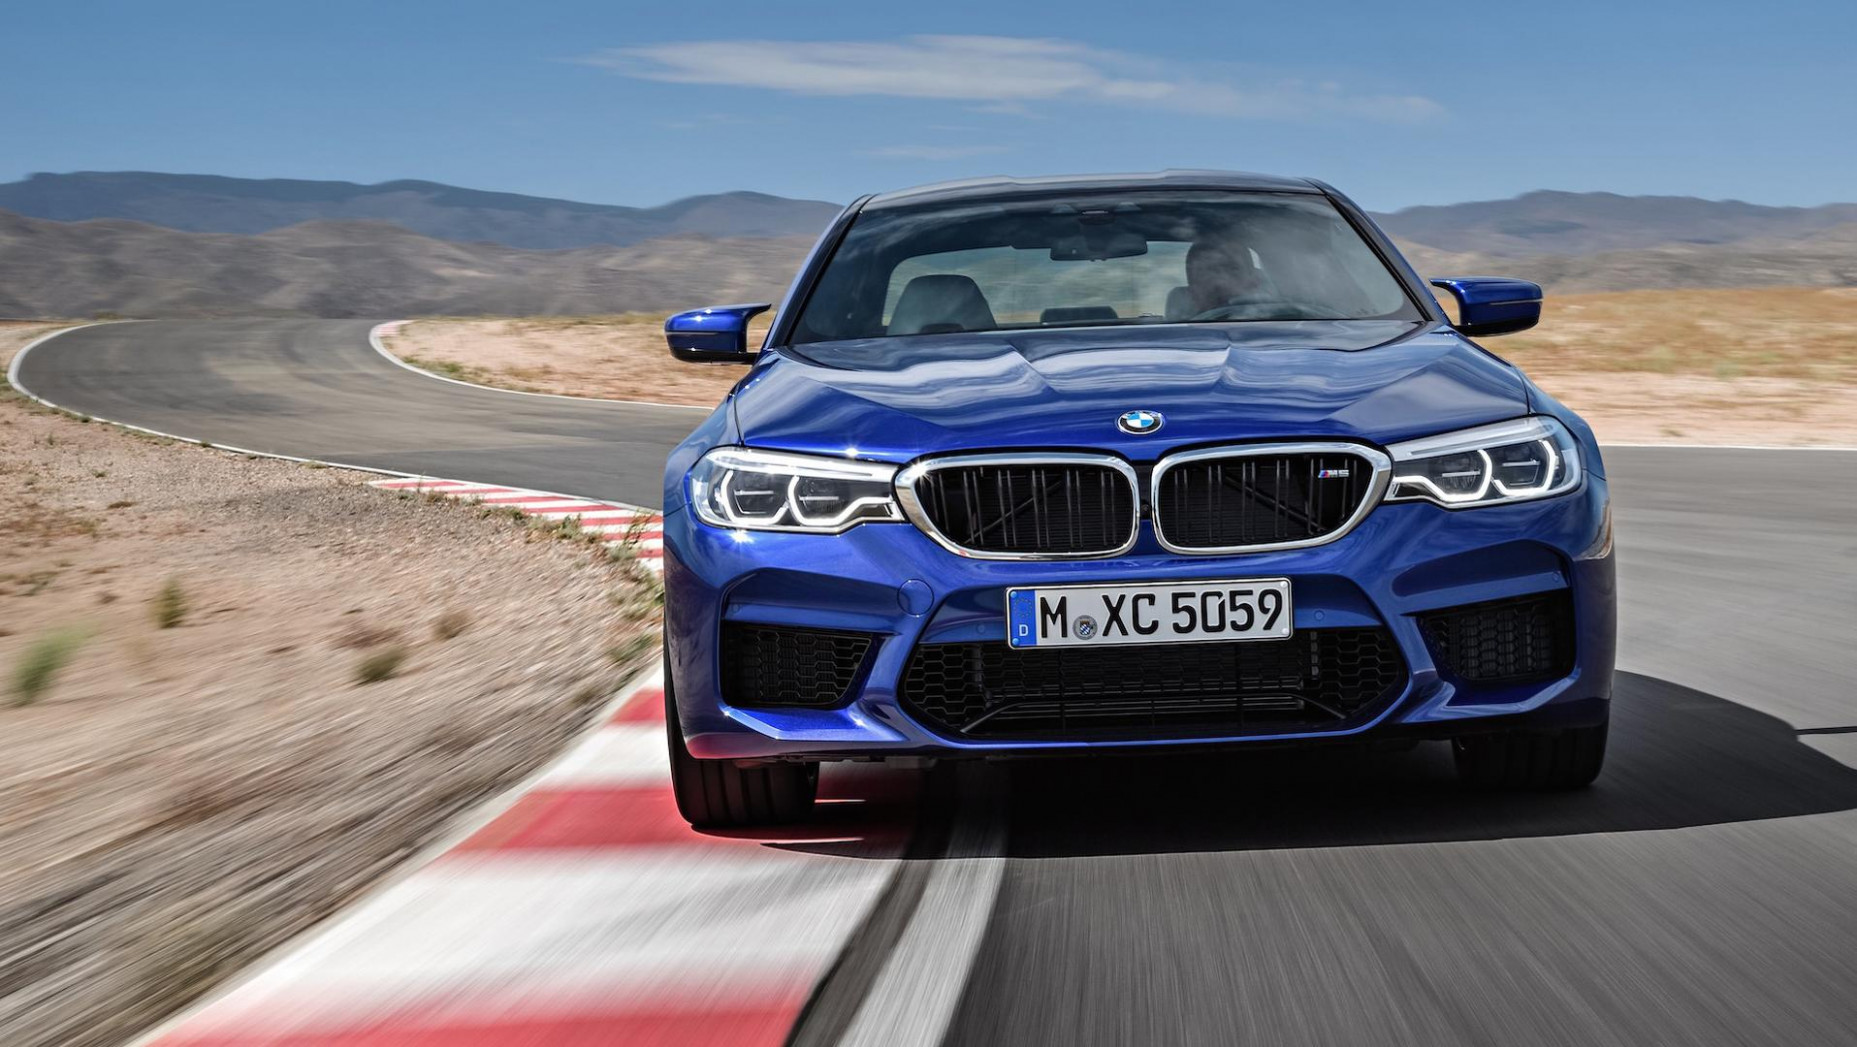 Performance and New Engine 2022 BMW M5 Xdrive Awd